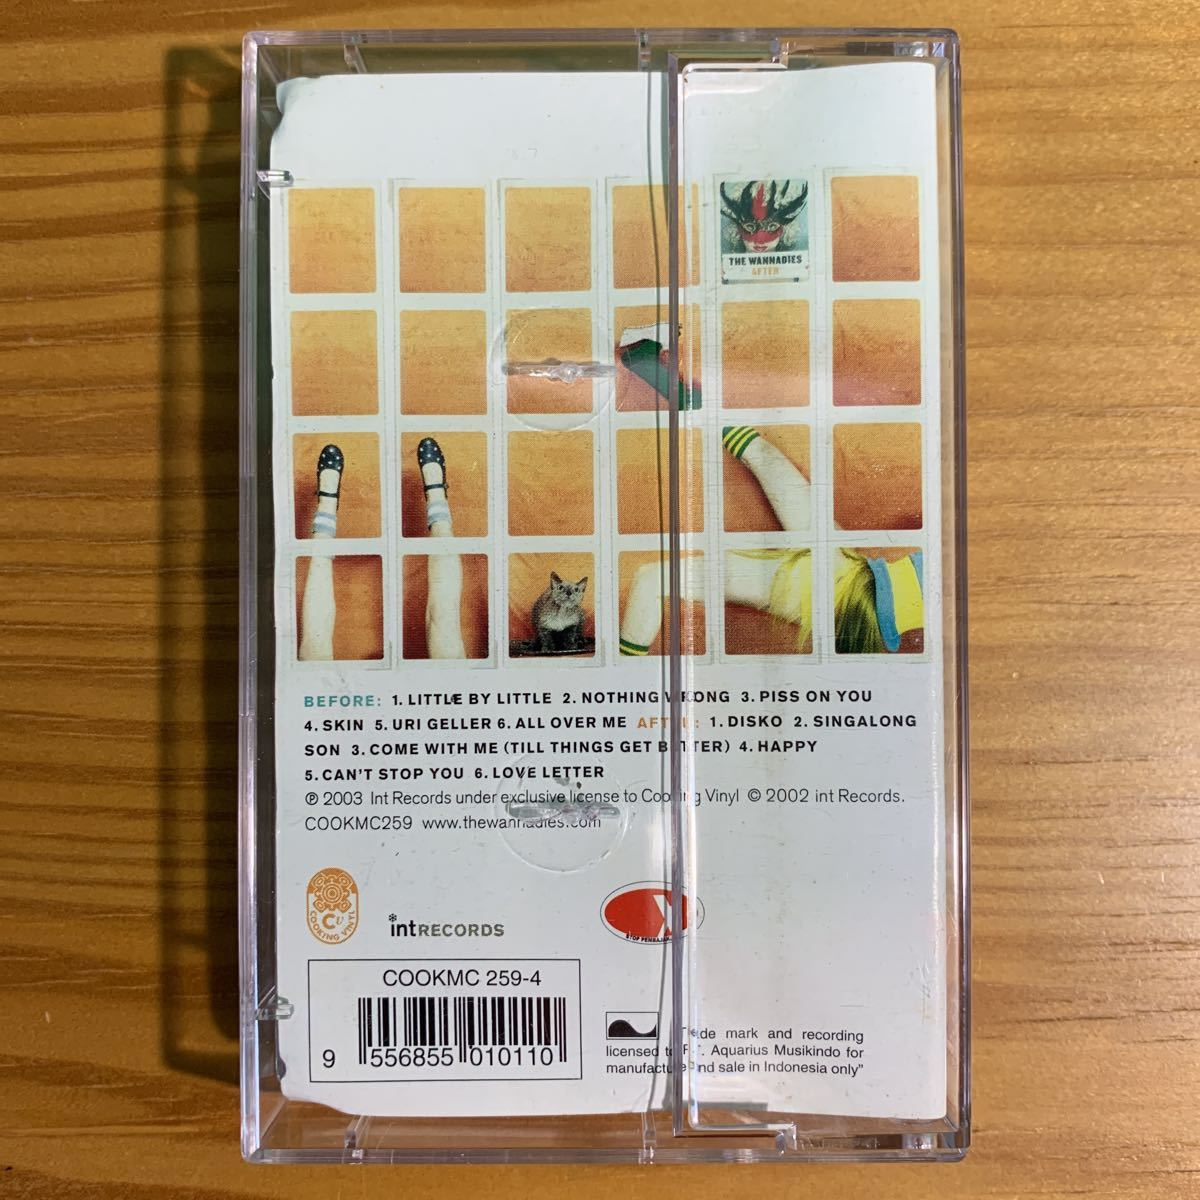 The Wannadies「Before & After」カセットテープ 輸入盤 正規品 OFFICIAL アナログ ワナダイズ ギターポップ パンク天国 2003 名作 激レア!_画像2